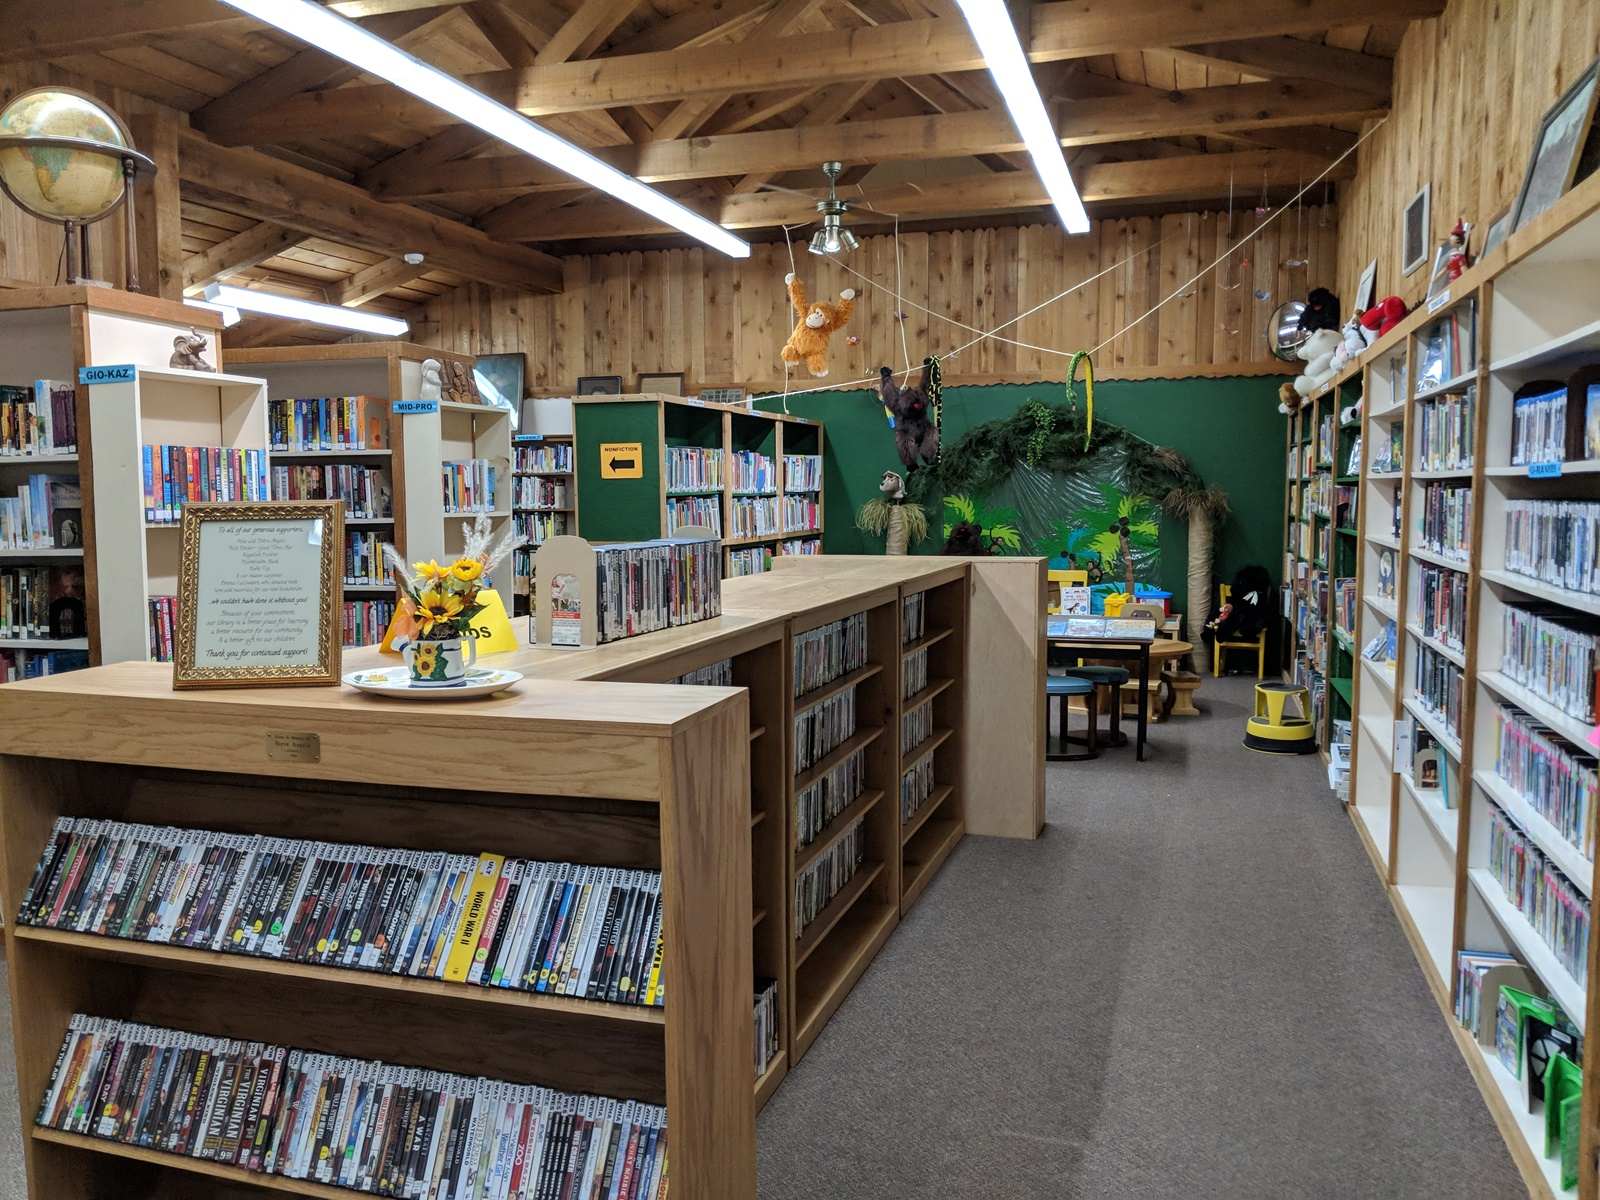 library room with shelves of books